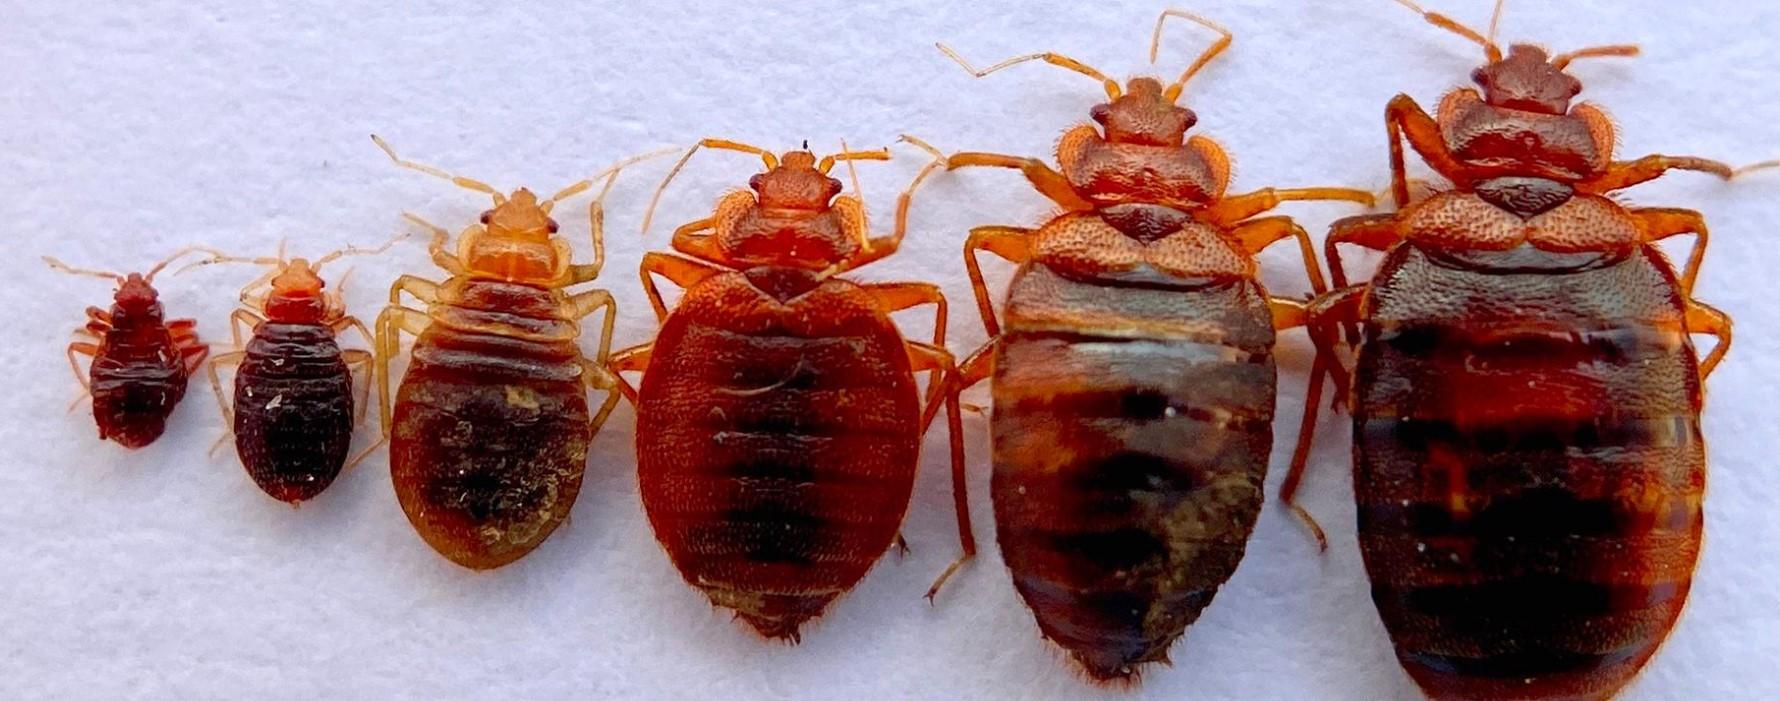 close up of bedbugs in a row